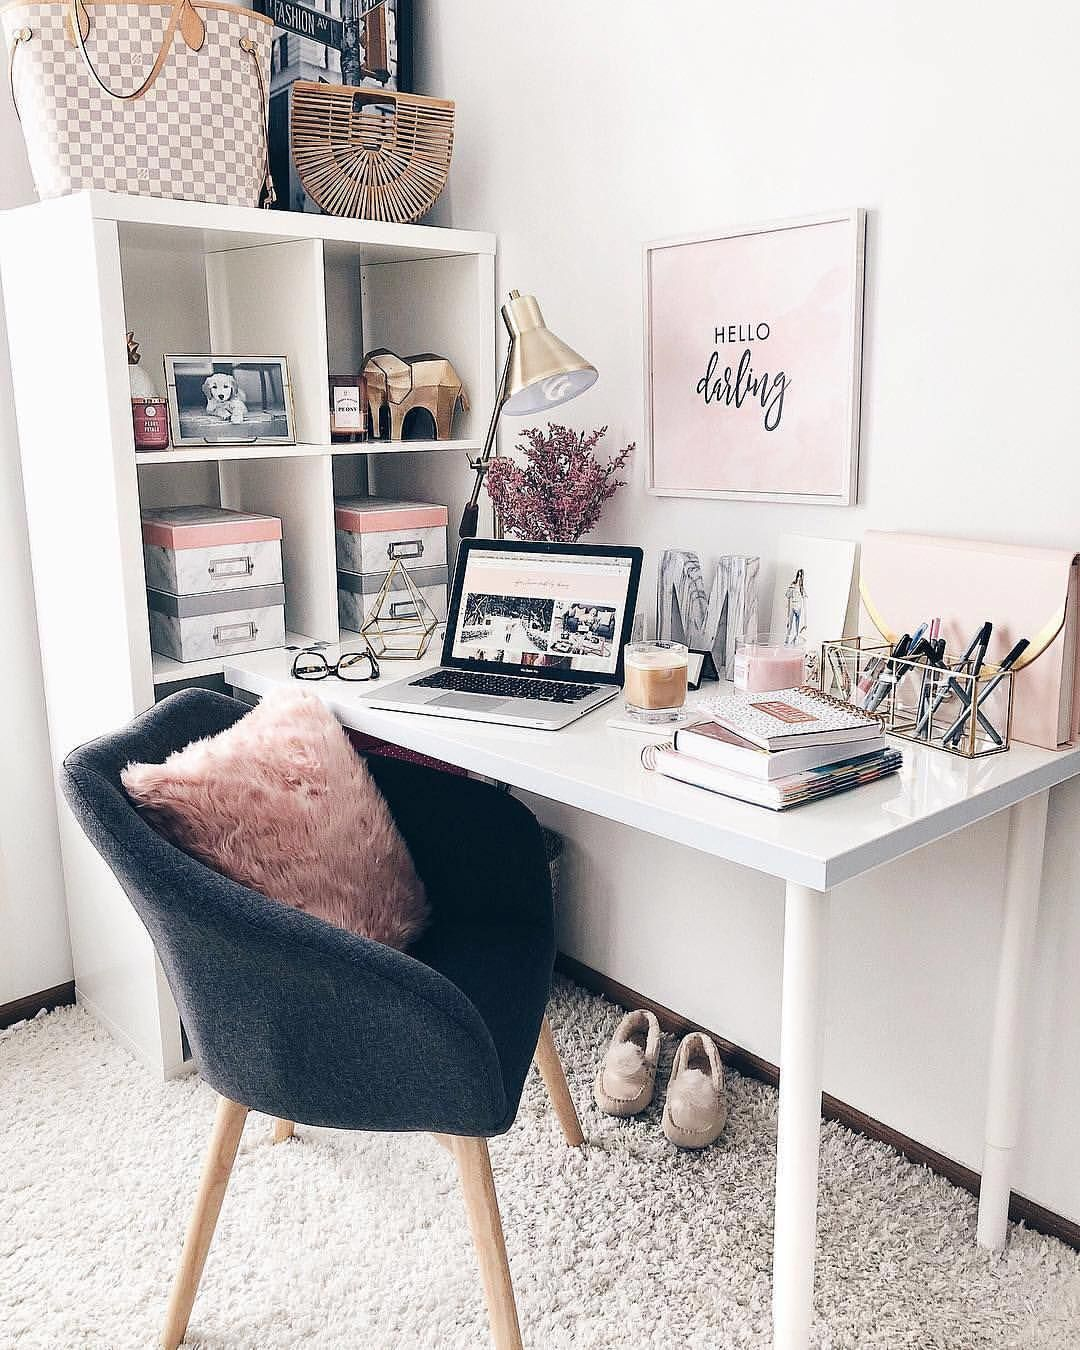 26 3k Likes 119 Comments Liketoknow It Liketoknow It On Instagram Finalize Your Friday Goals A La Fashio Cute Desk Decor Room Decor Home Office Design